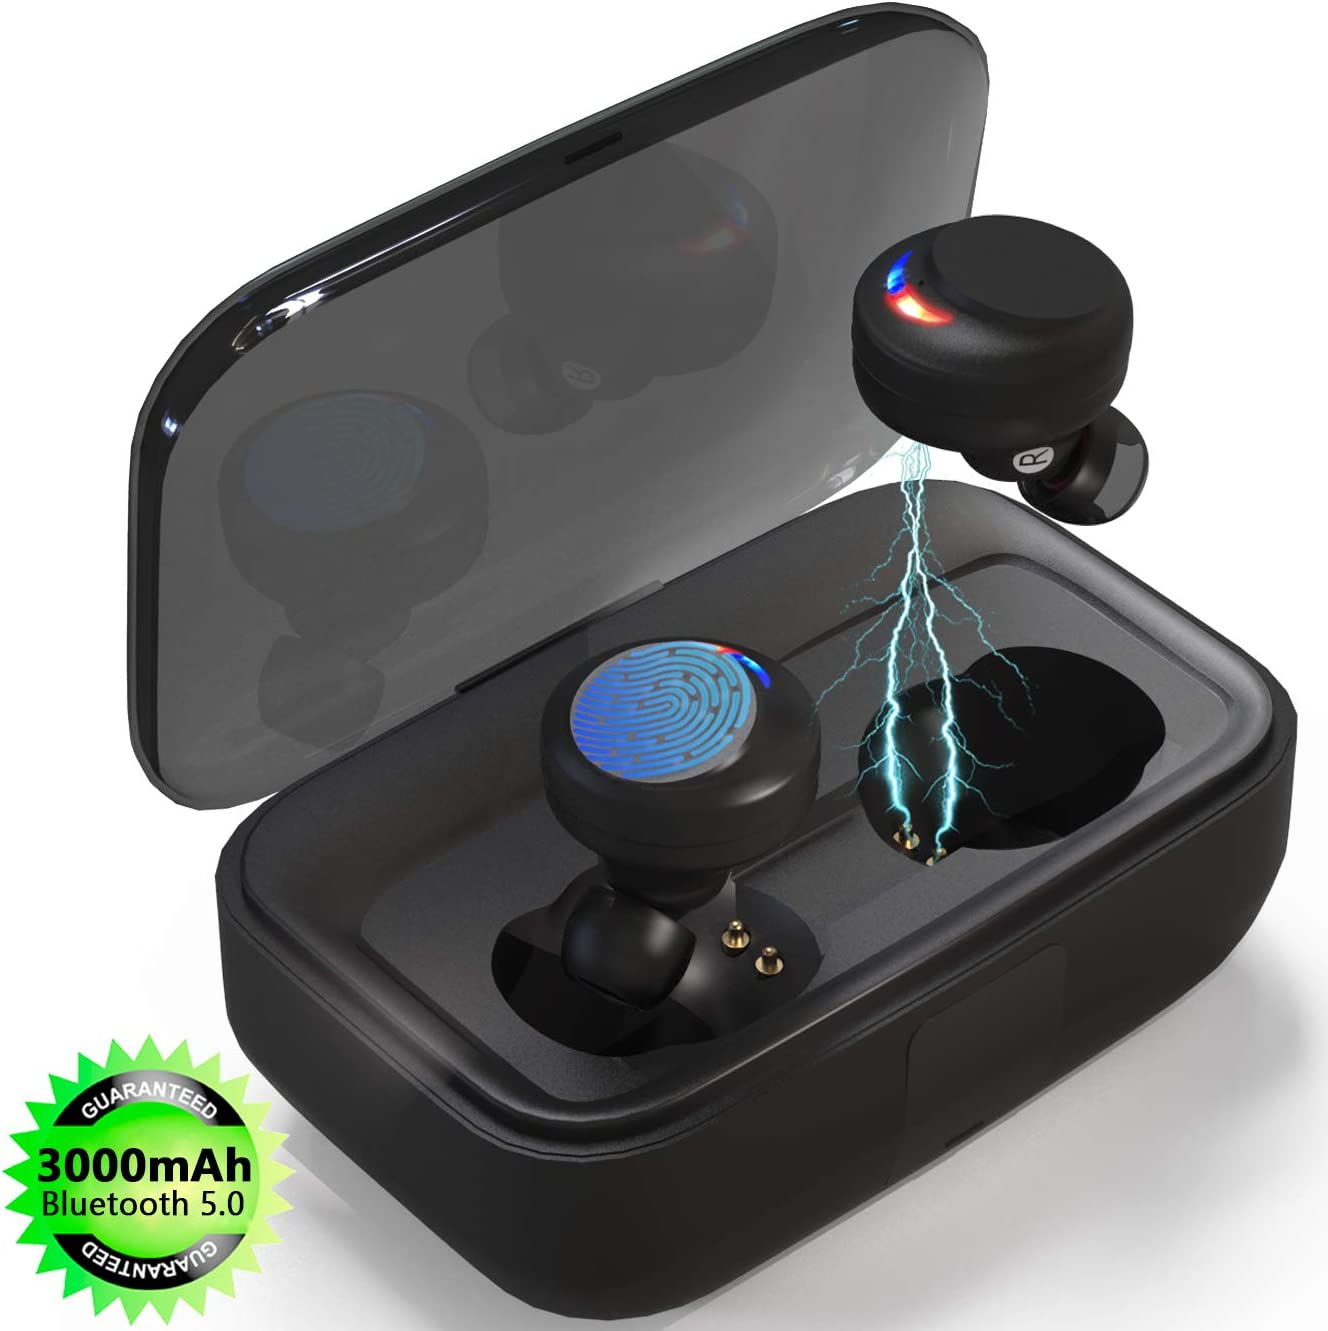 Wireless Earbuds, Bluetooth 5.0 Headphones Touch Earphones IPX8 Waterproof 3D Hi-Fi Sound with Deep Bass Ture Wireless Stereo in-Ear Wireless 3000mAh Magnetic Charging Case